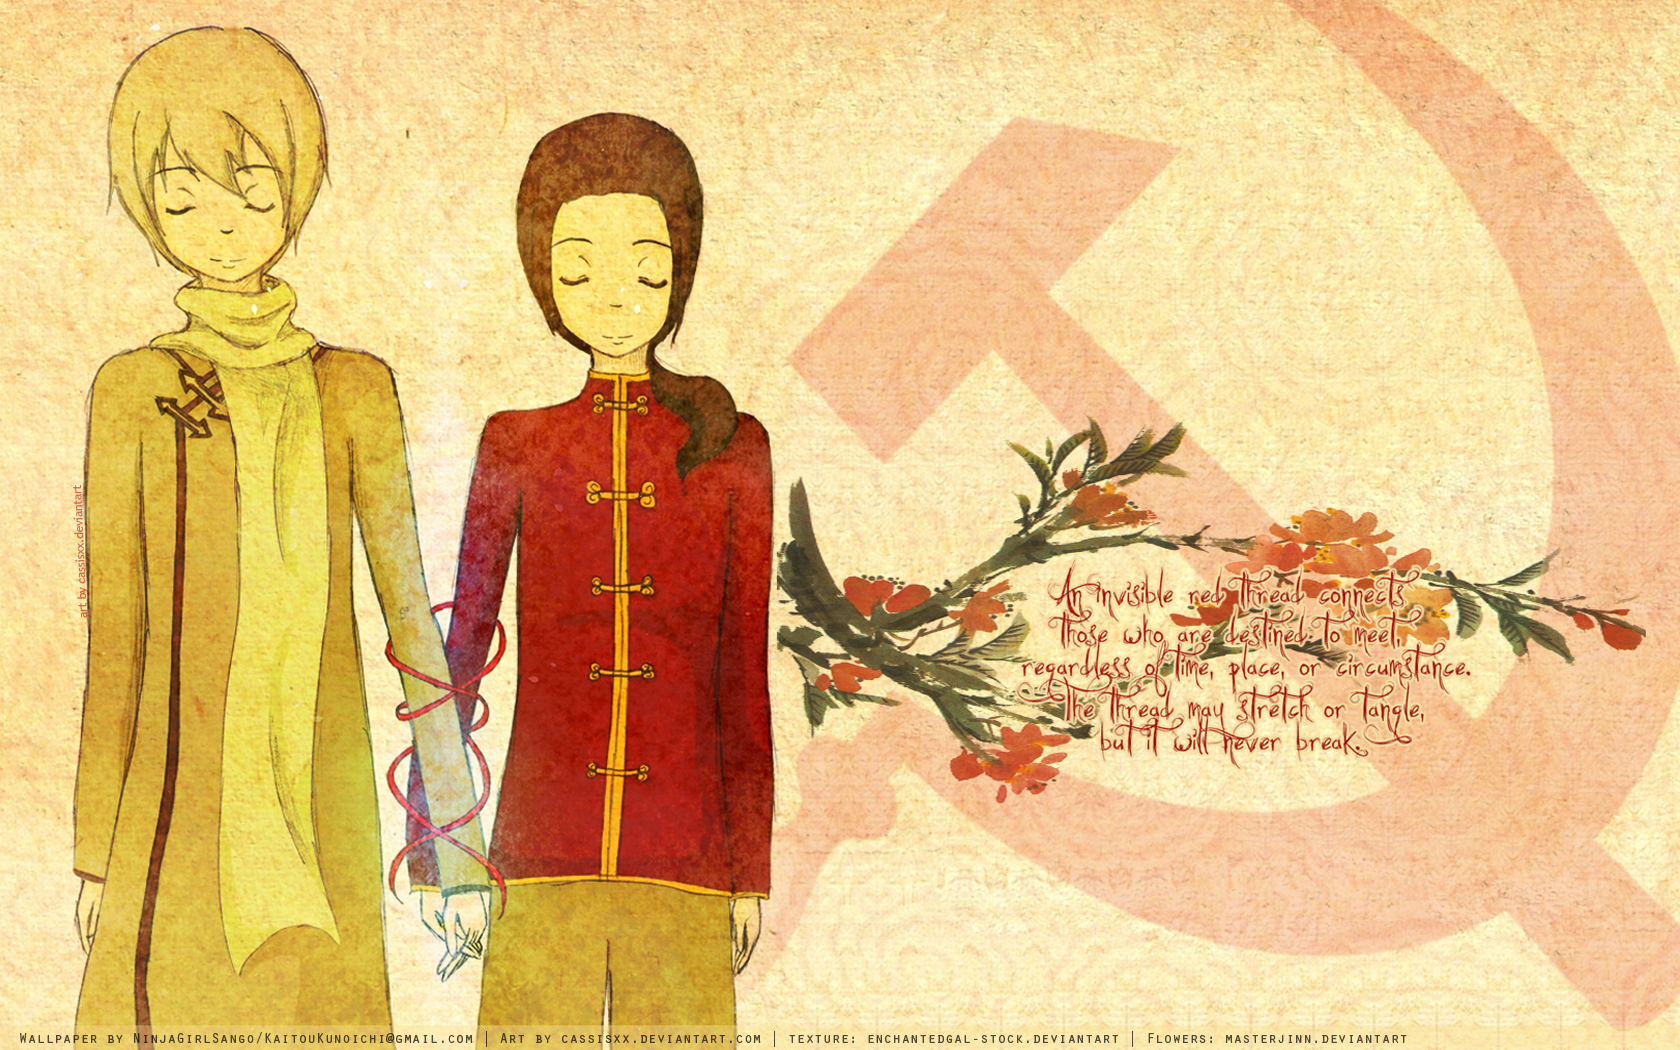 communism China Russia Anime HD Wallpaper